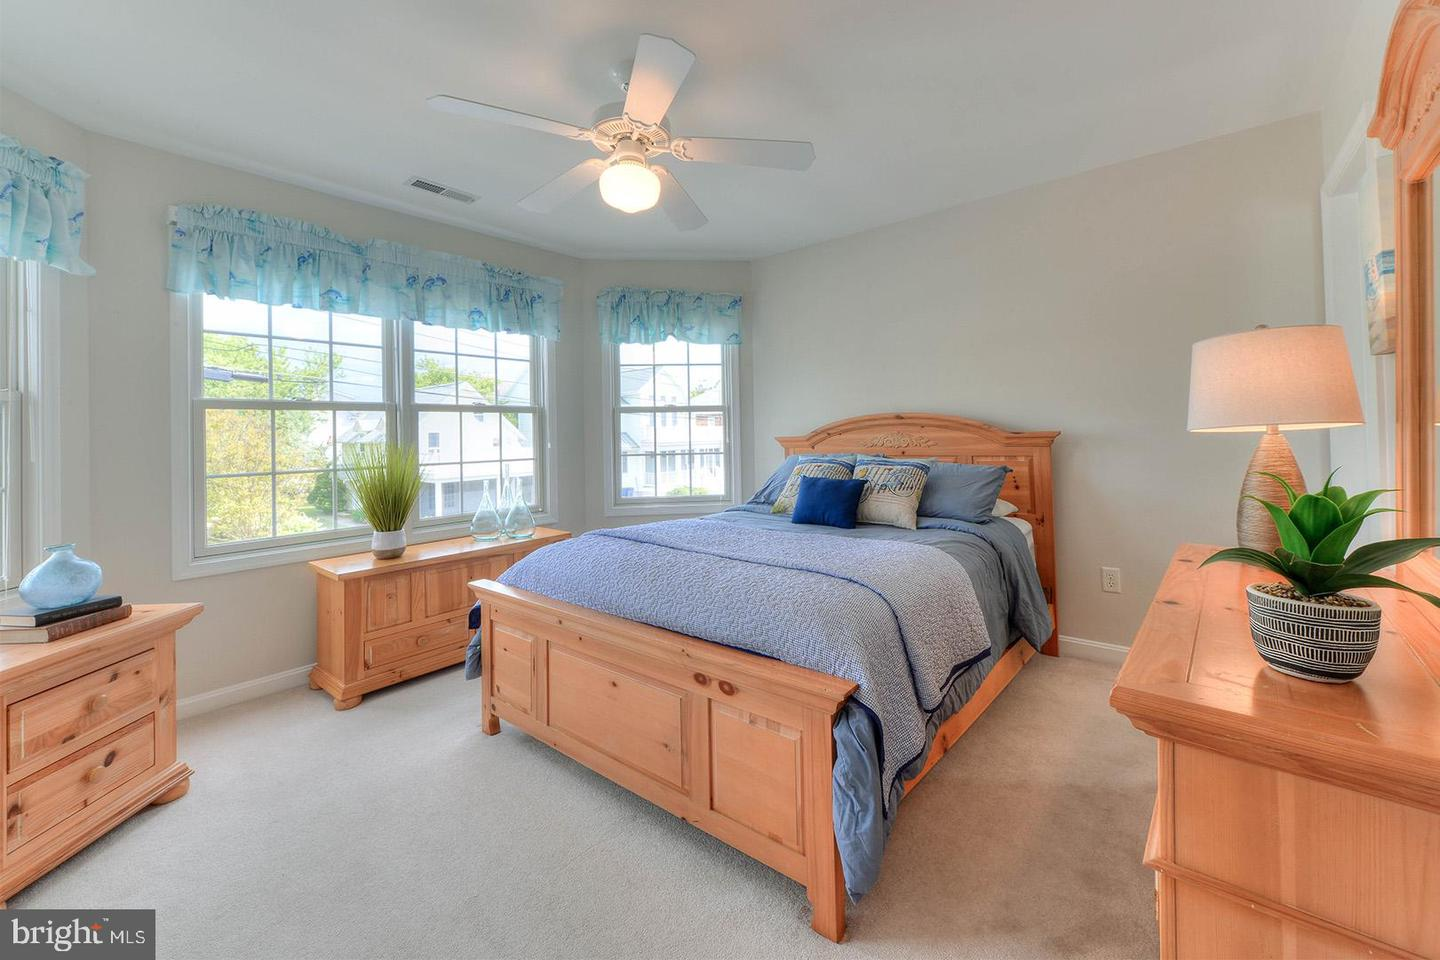 DESU139874-301711164547-2019-05-16-07-32-35 10 New Castle St | Rehoboth Beach, DE Real Estate For Sale | MLS# Desu139874  - Rehoboth Beach Real Estate - Bryce Lingo and Shaun Tull REALTORS, Rehoboth Beach, Delaware